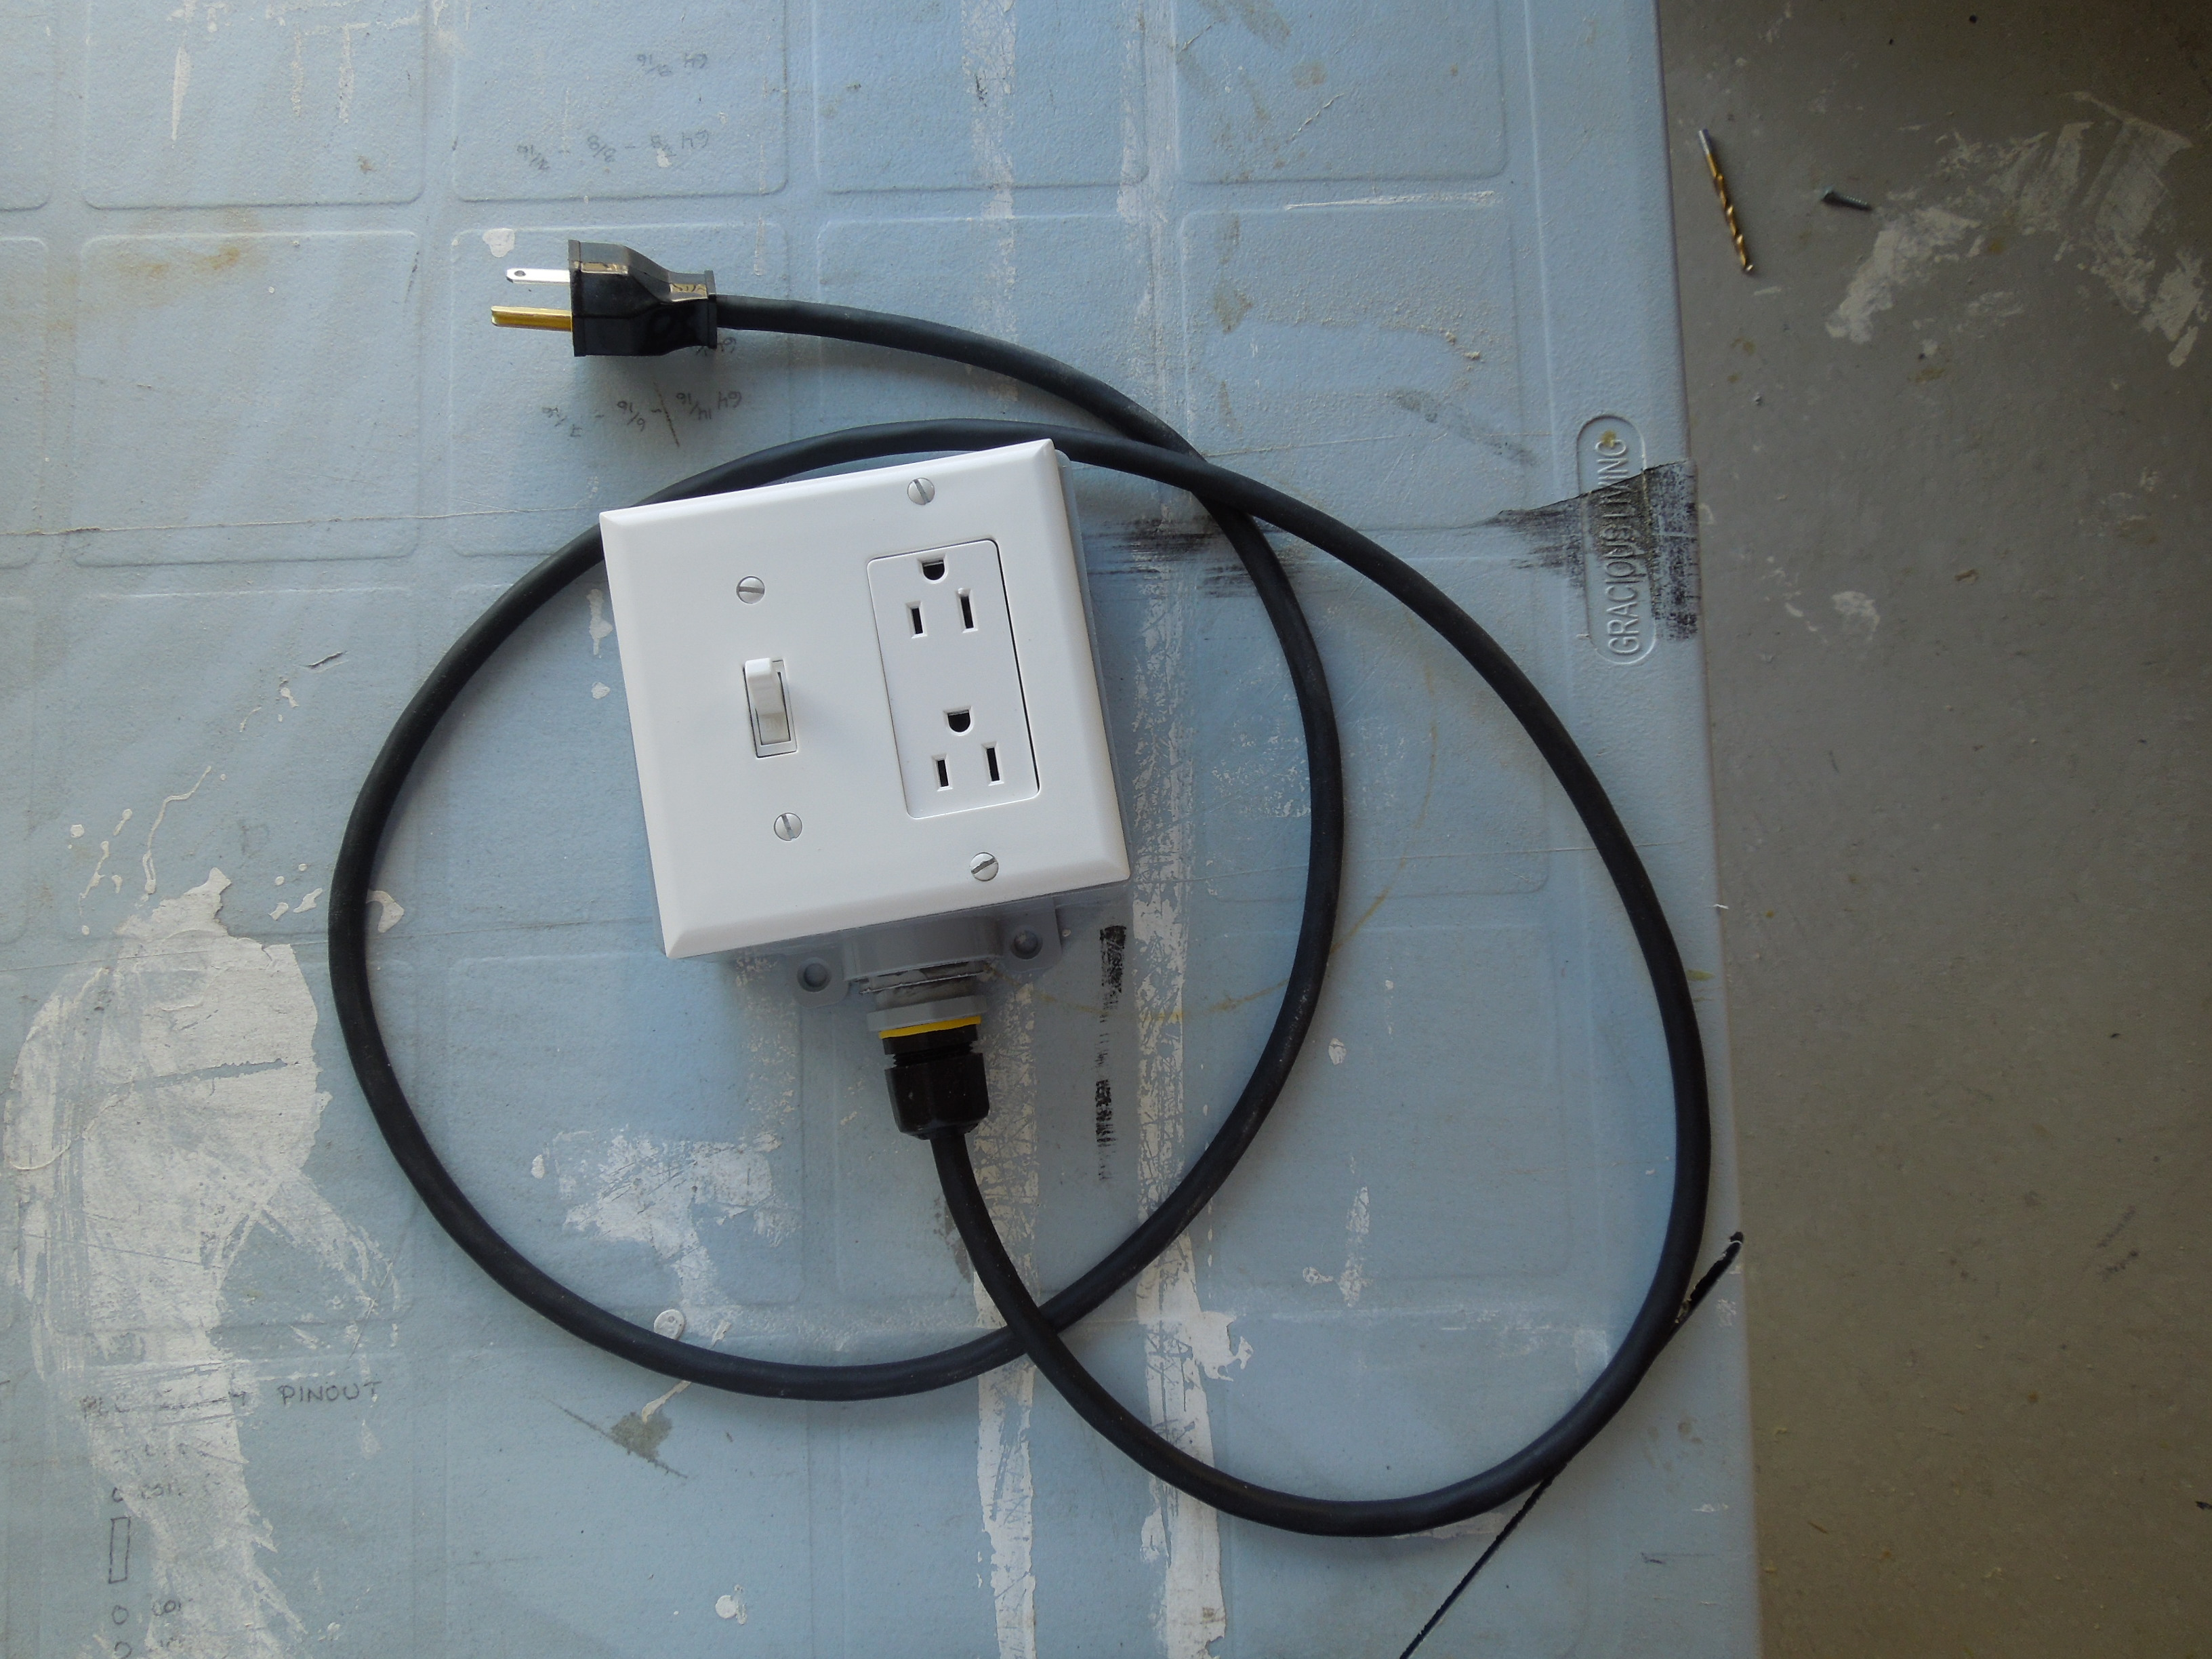 diy extension cord with built in switch safe quick and simple 5 steps [ 2100 x 1575 Pixel ]